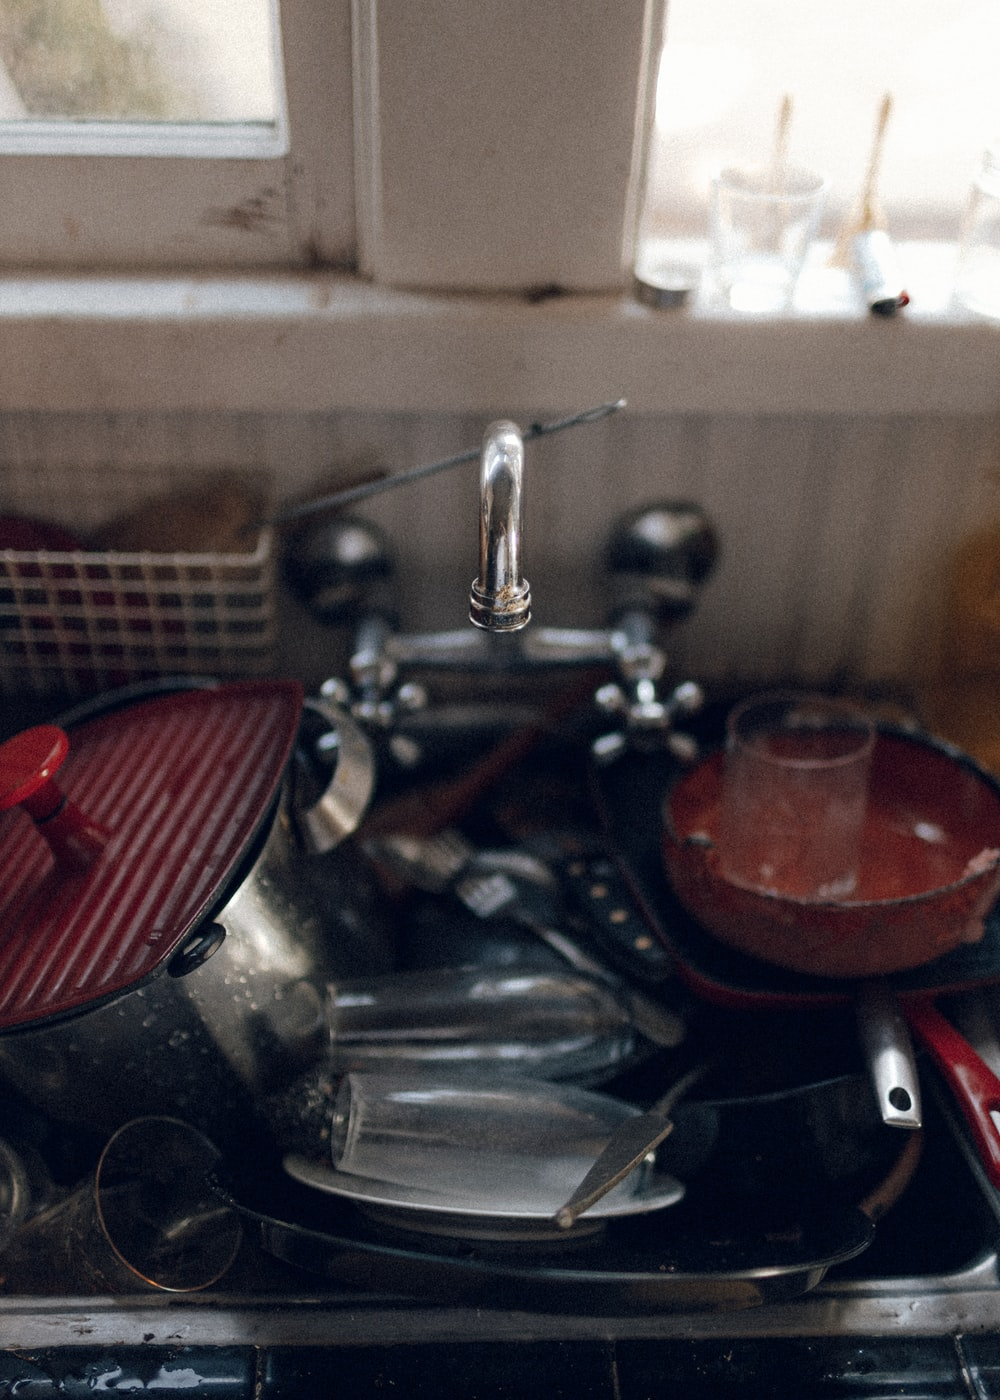 red and silver sink with faucet